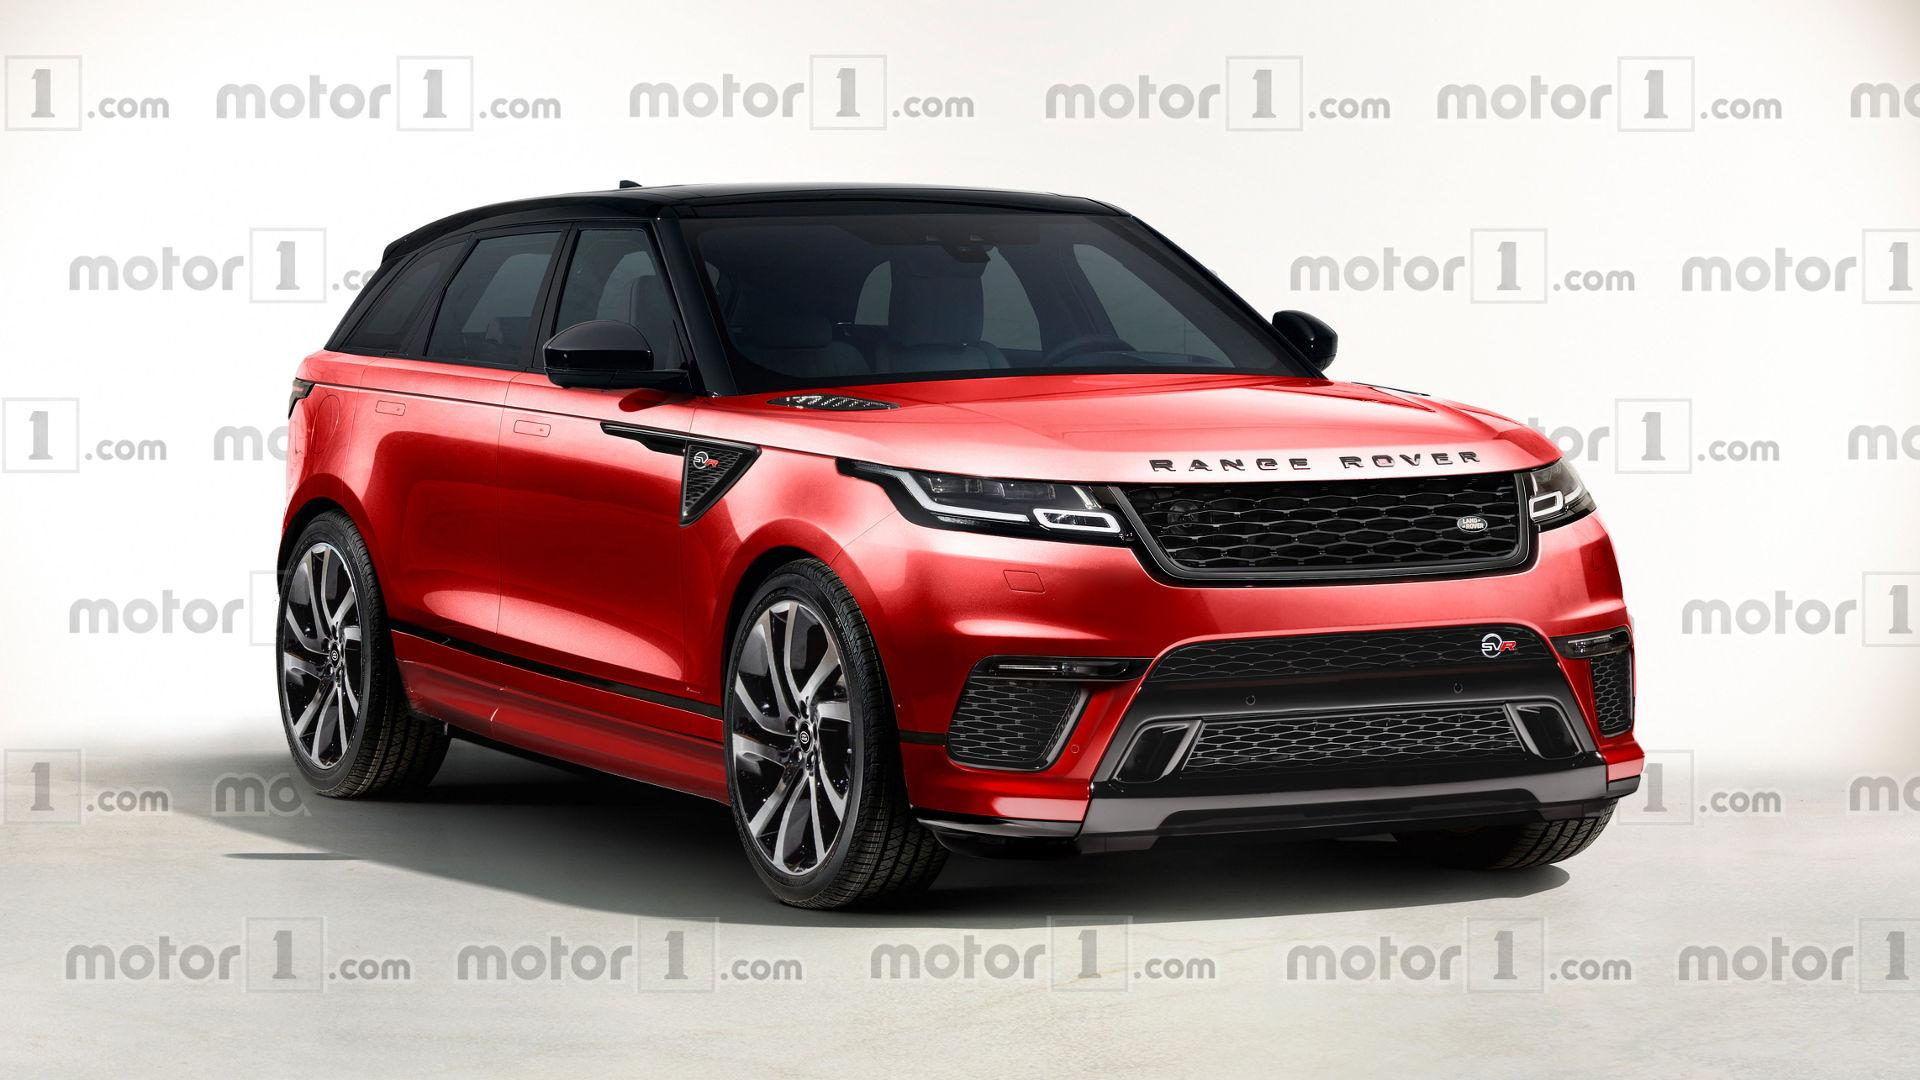 We Can ly Hope The Range Rover Velar SVR Will Look This Nice